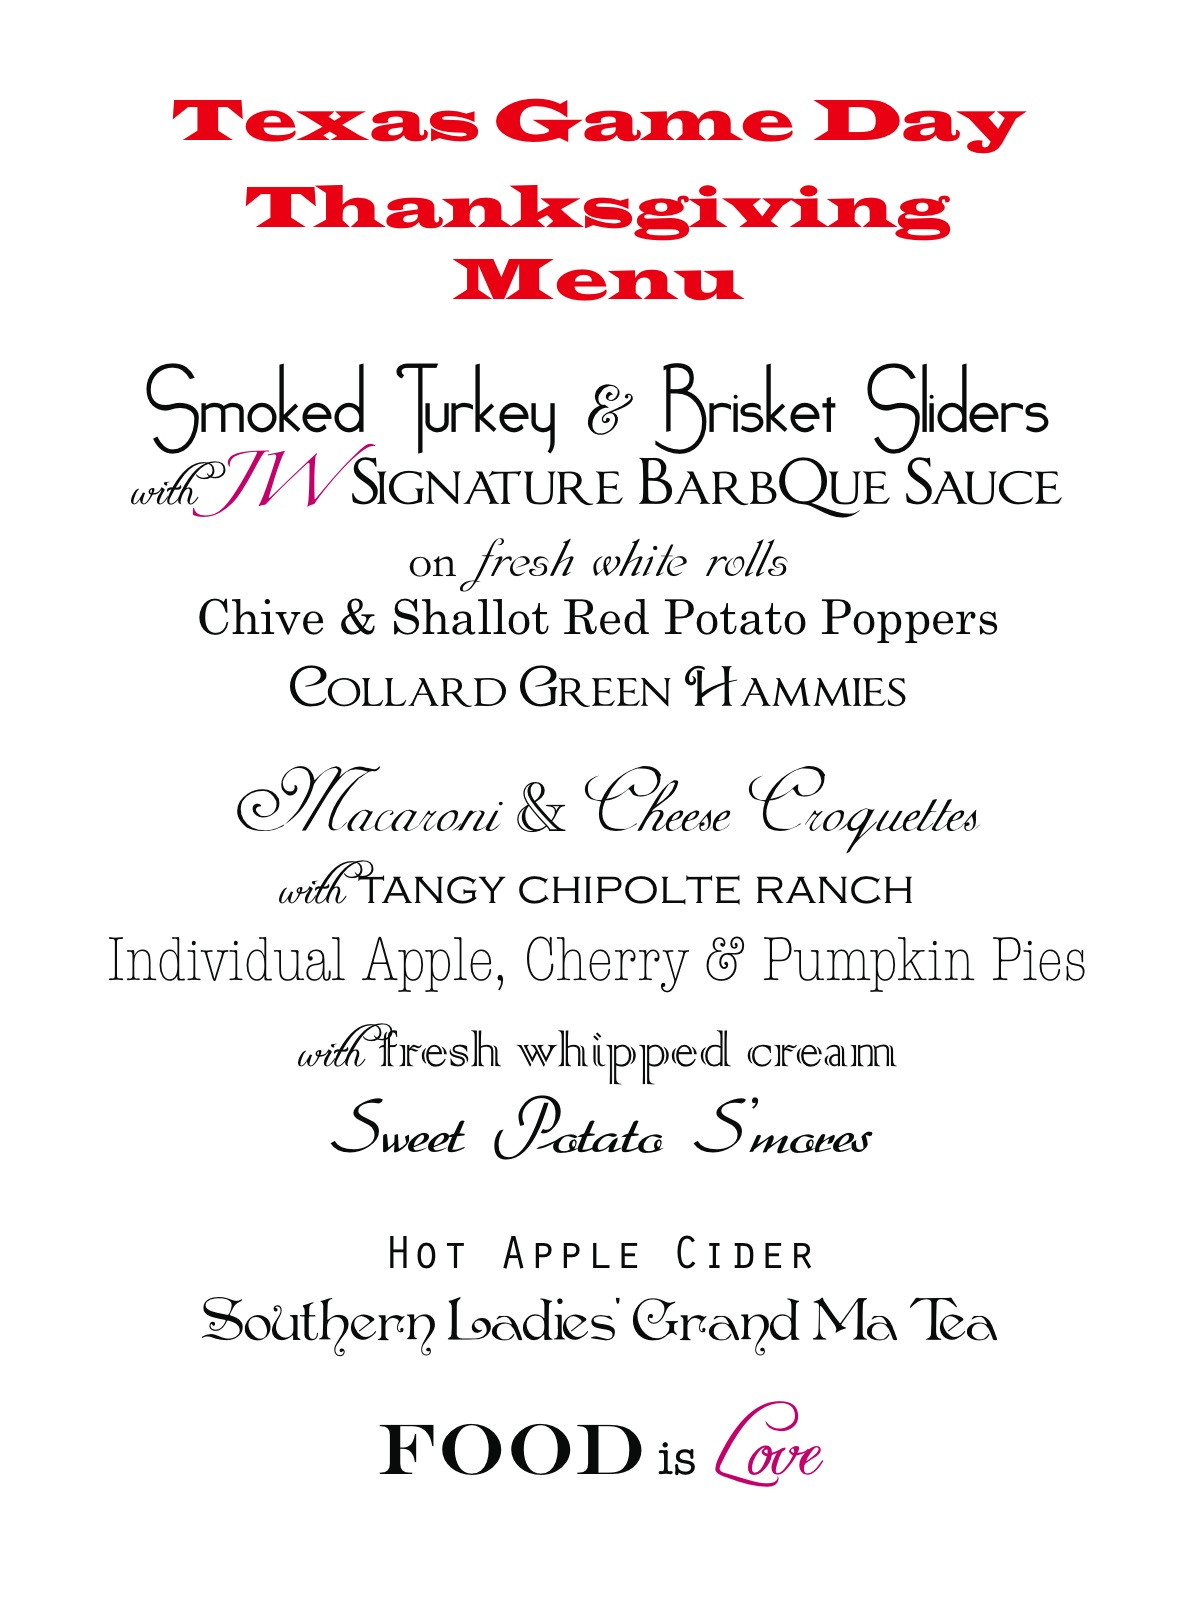 Traditional Southern Thanksgiving Dinner Menu  JW Food and Design